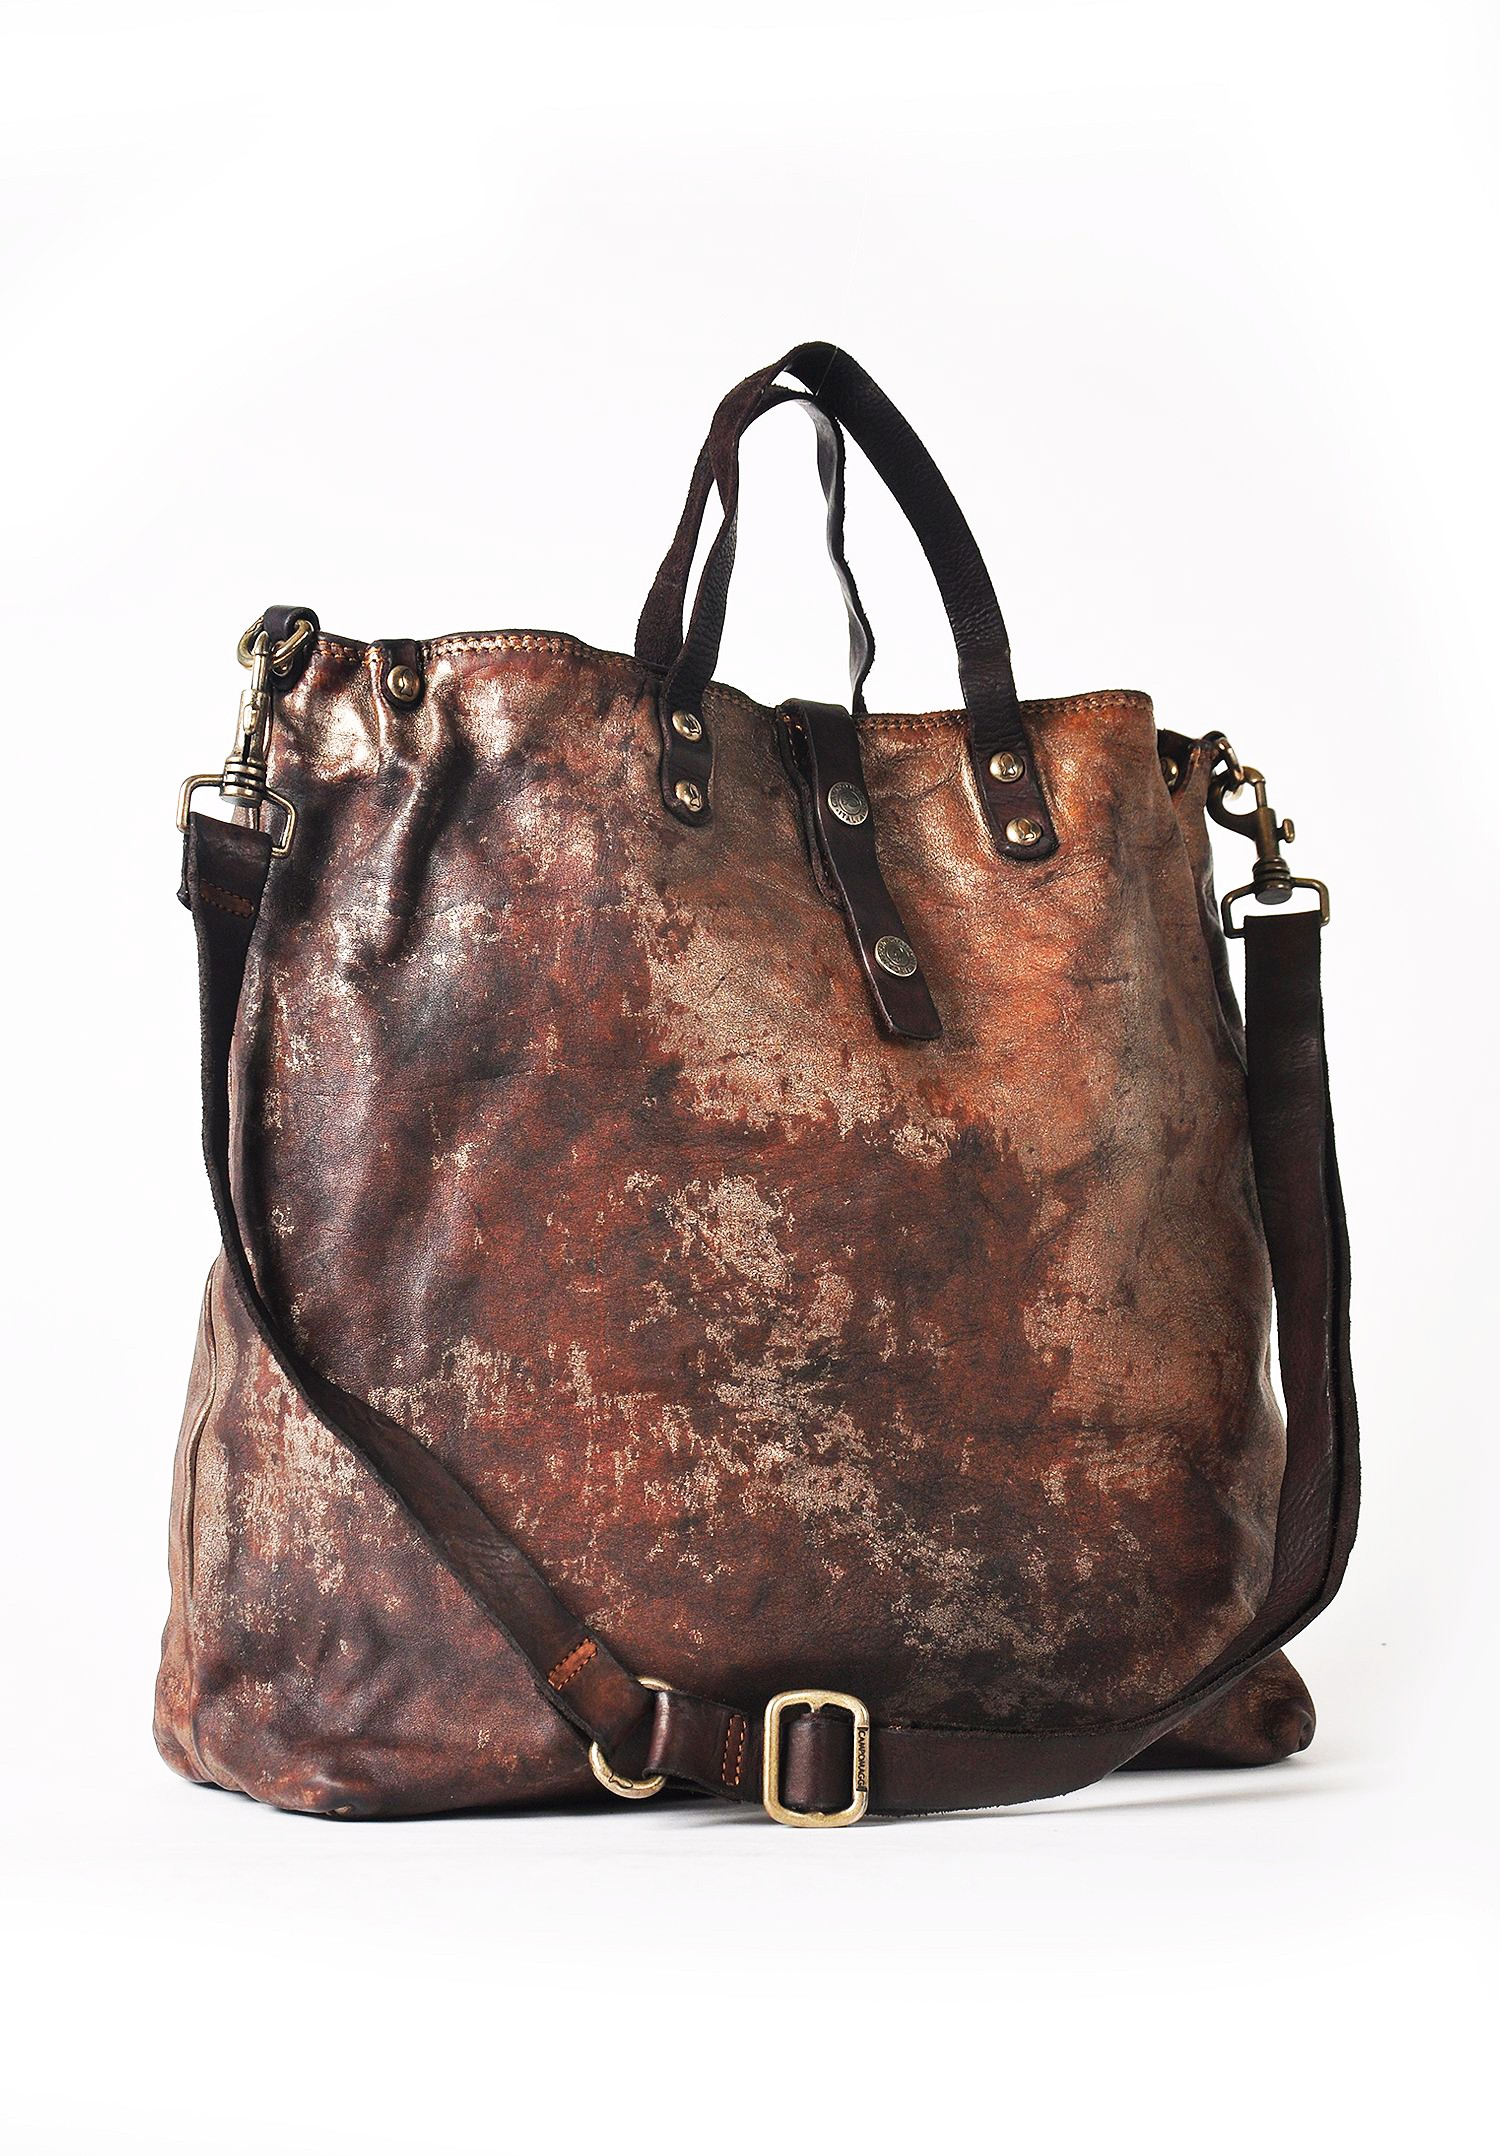 Campomaggi Is Known For Making Vintage Styled Bags That Improve As They Age All Are Handmade In Italy Using Hand Dyed Cowhide